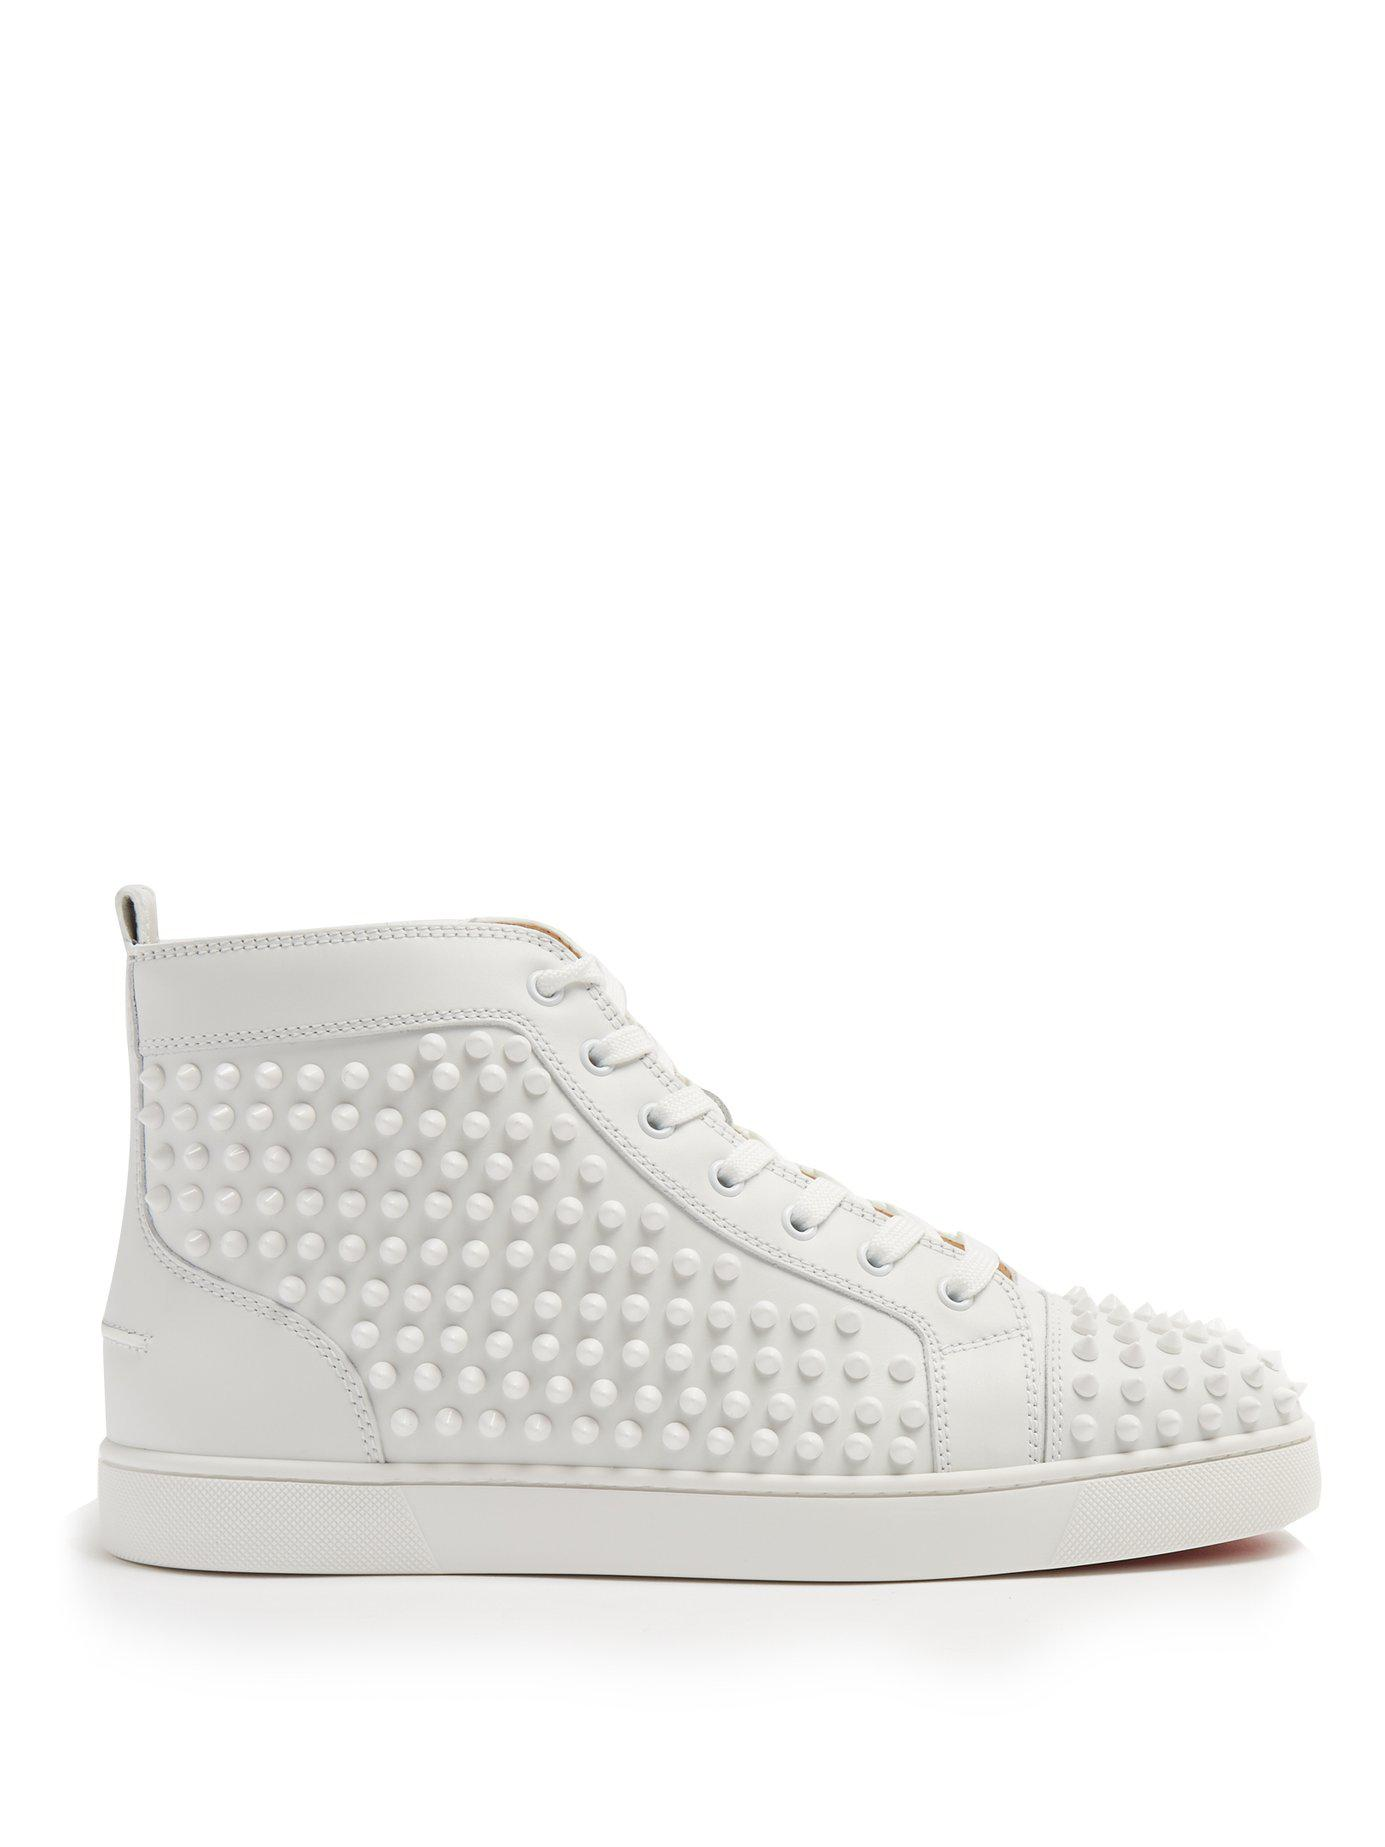 c442a10f7f4a Lyst - Christian Louboutin Louis Spiked Leather High Top Trainers in ...